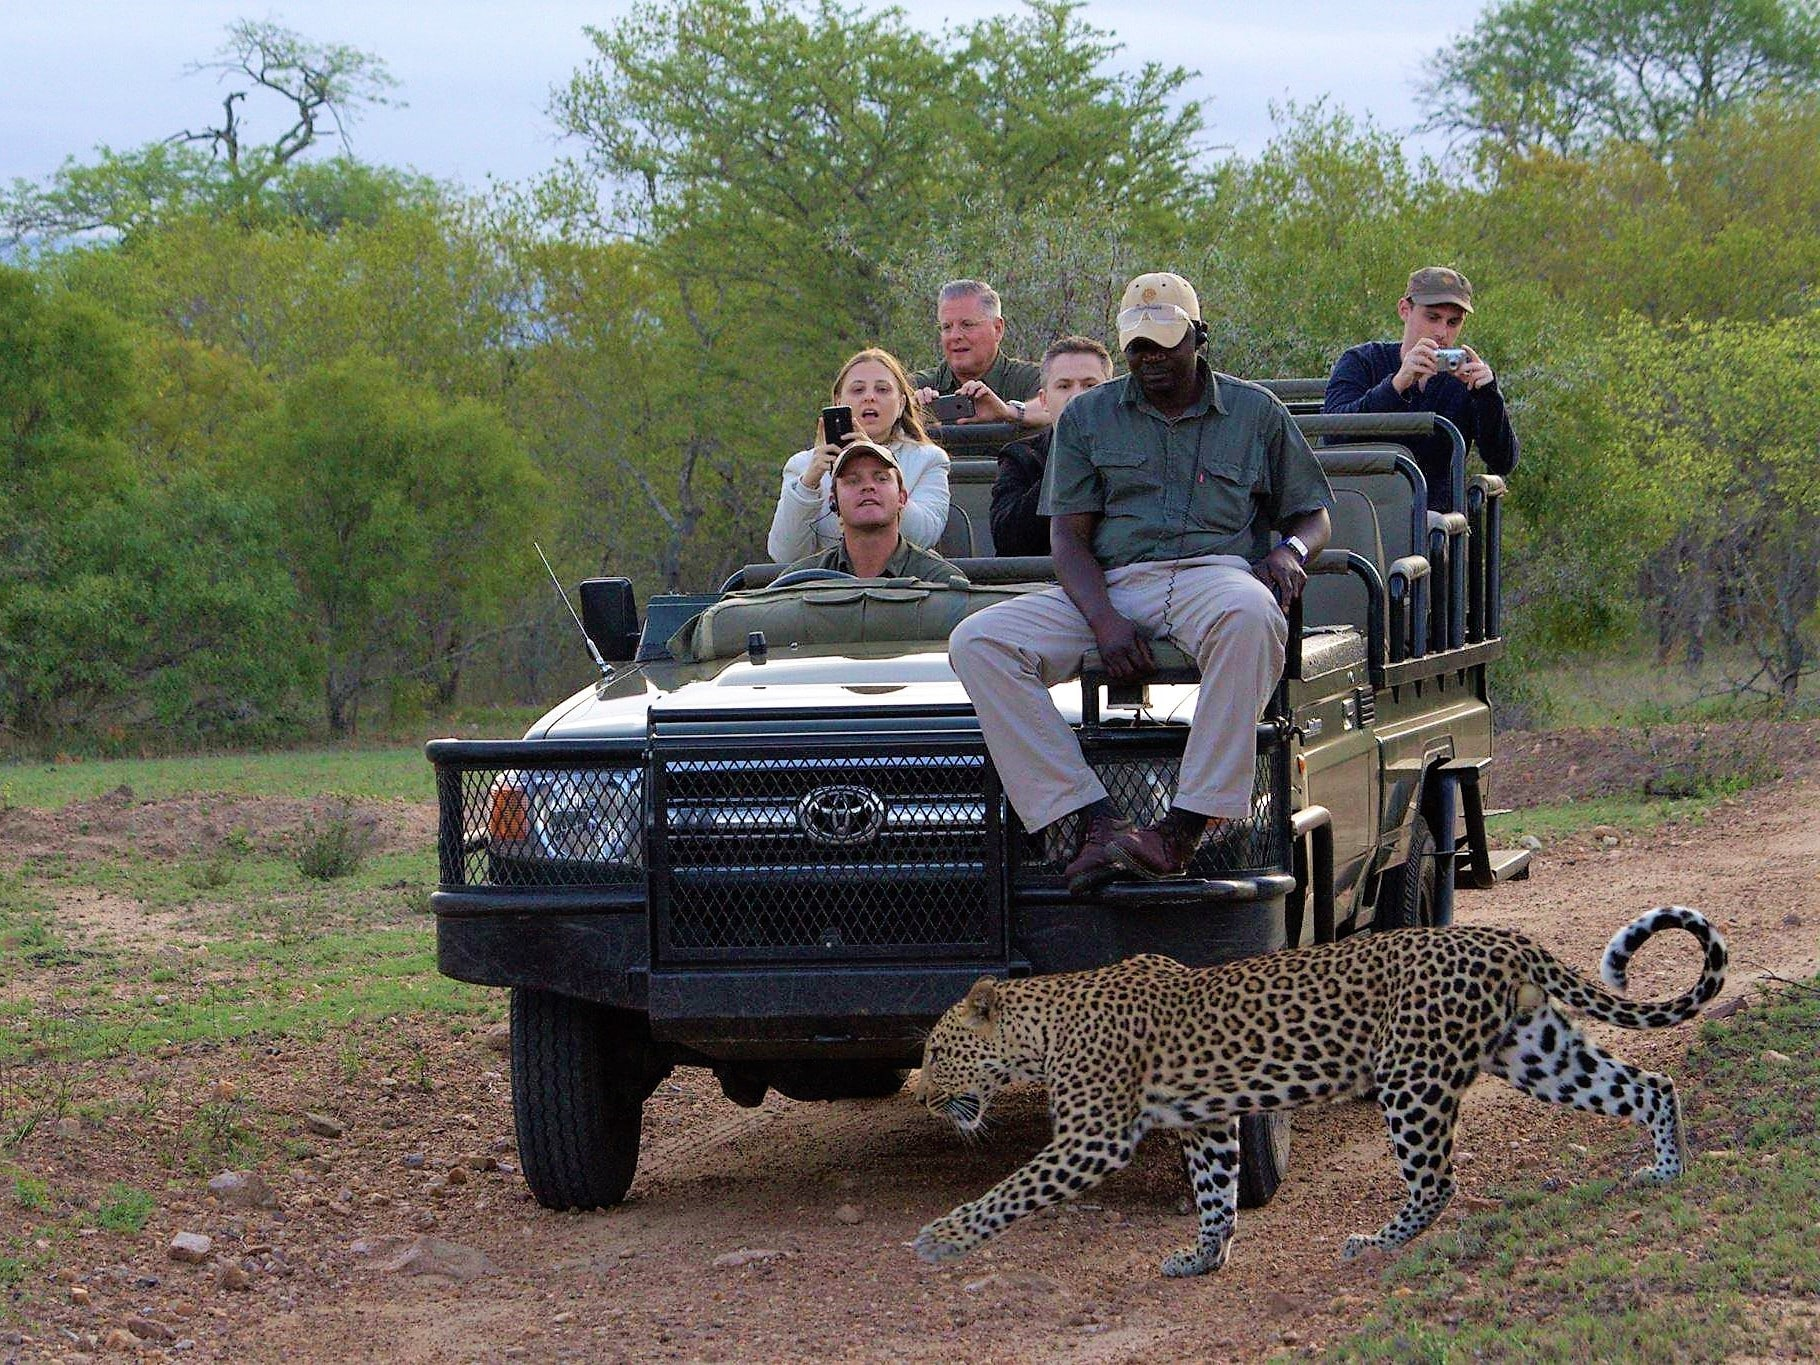 Leopard crossing at N'Kaya